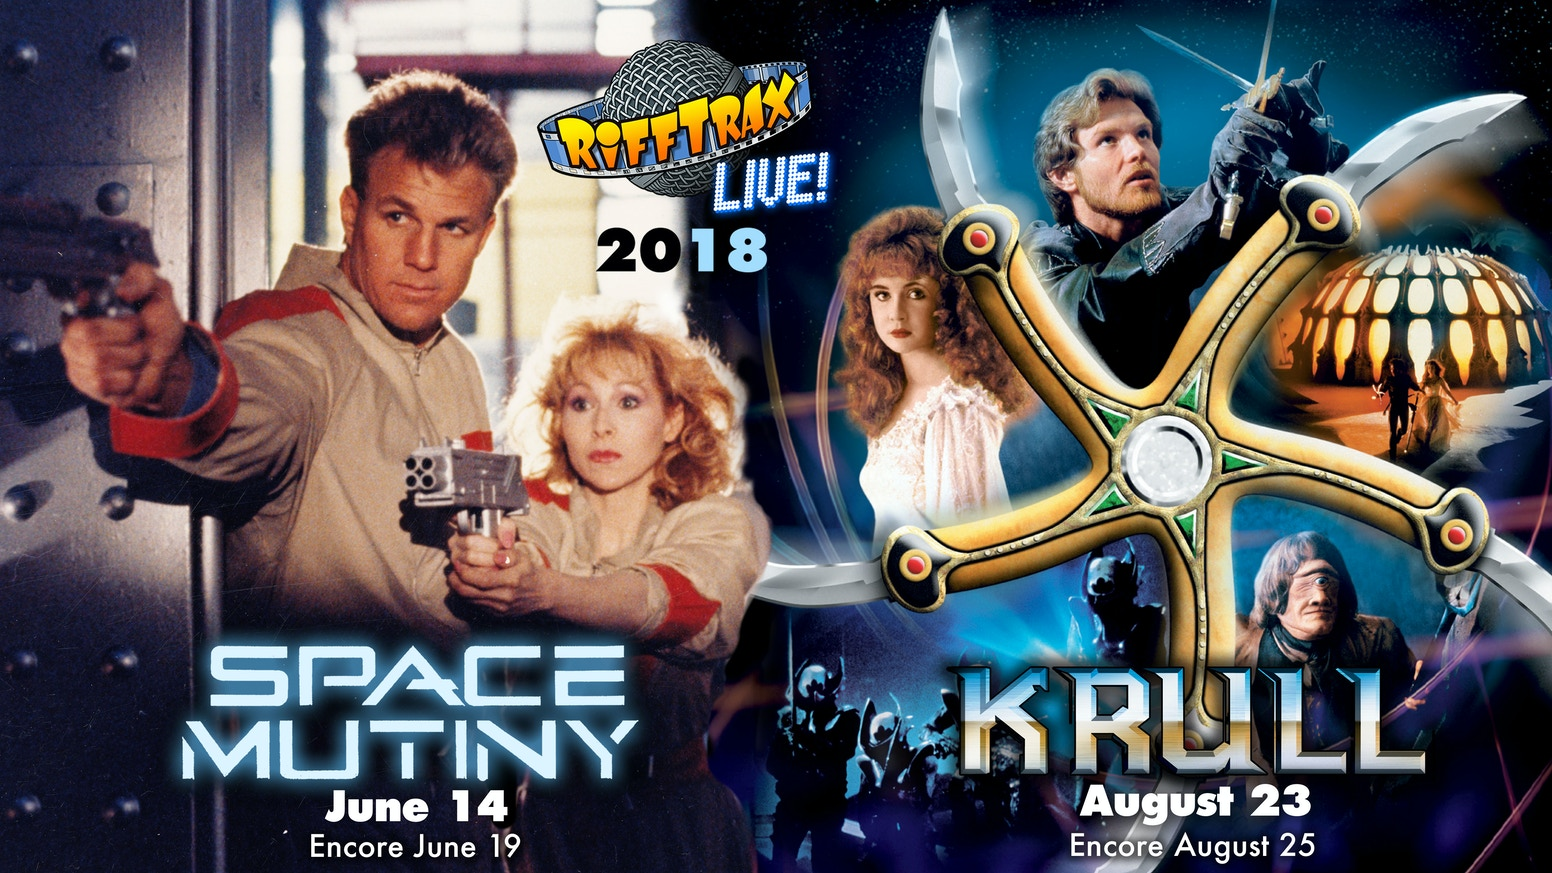 RiffTrax will perform two Live Shows in 2018 simulcast to hundreds of movie theaters nationwide: SPACE MUTINY and KRULL!